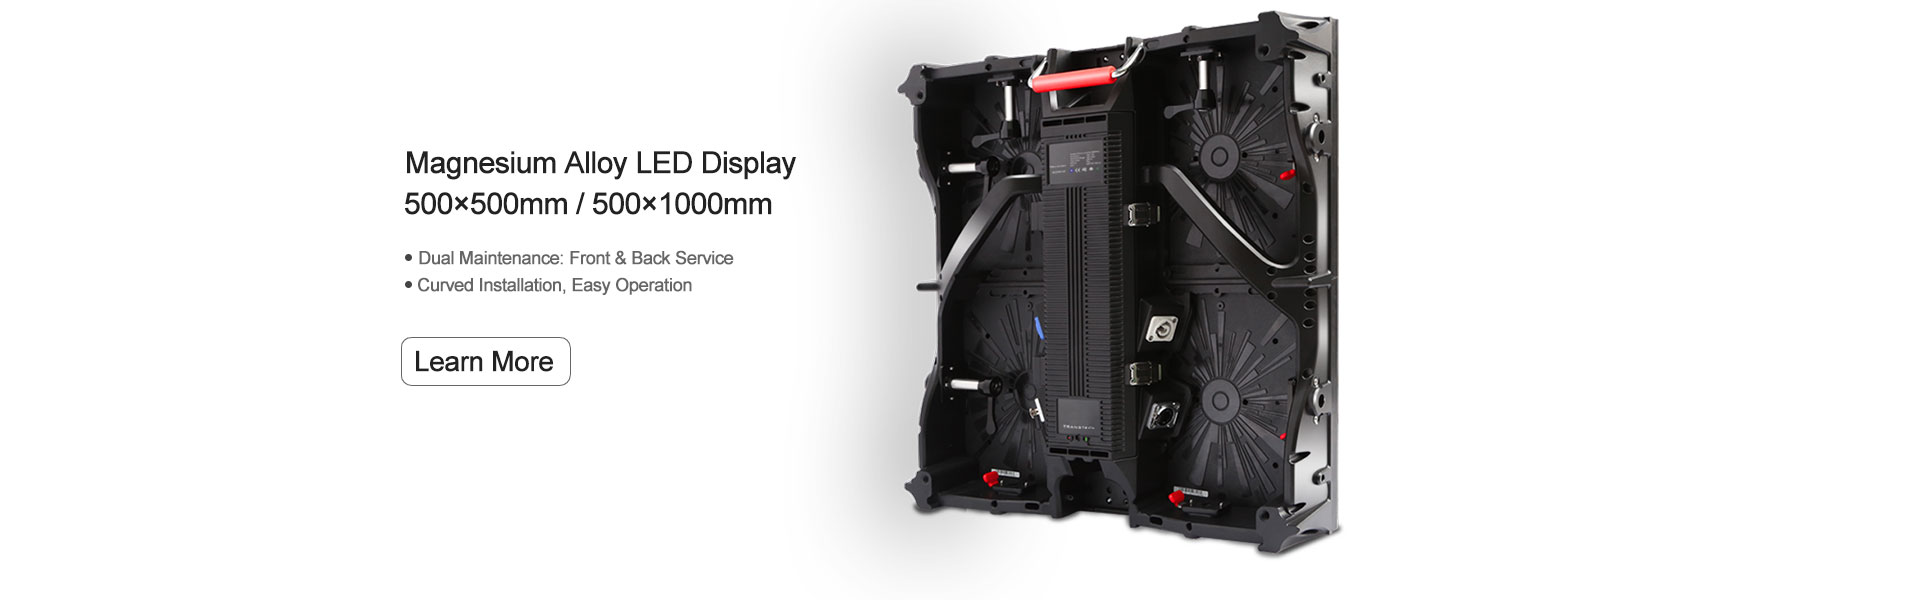 Magnesium Alloy led display